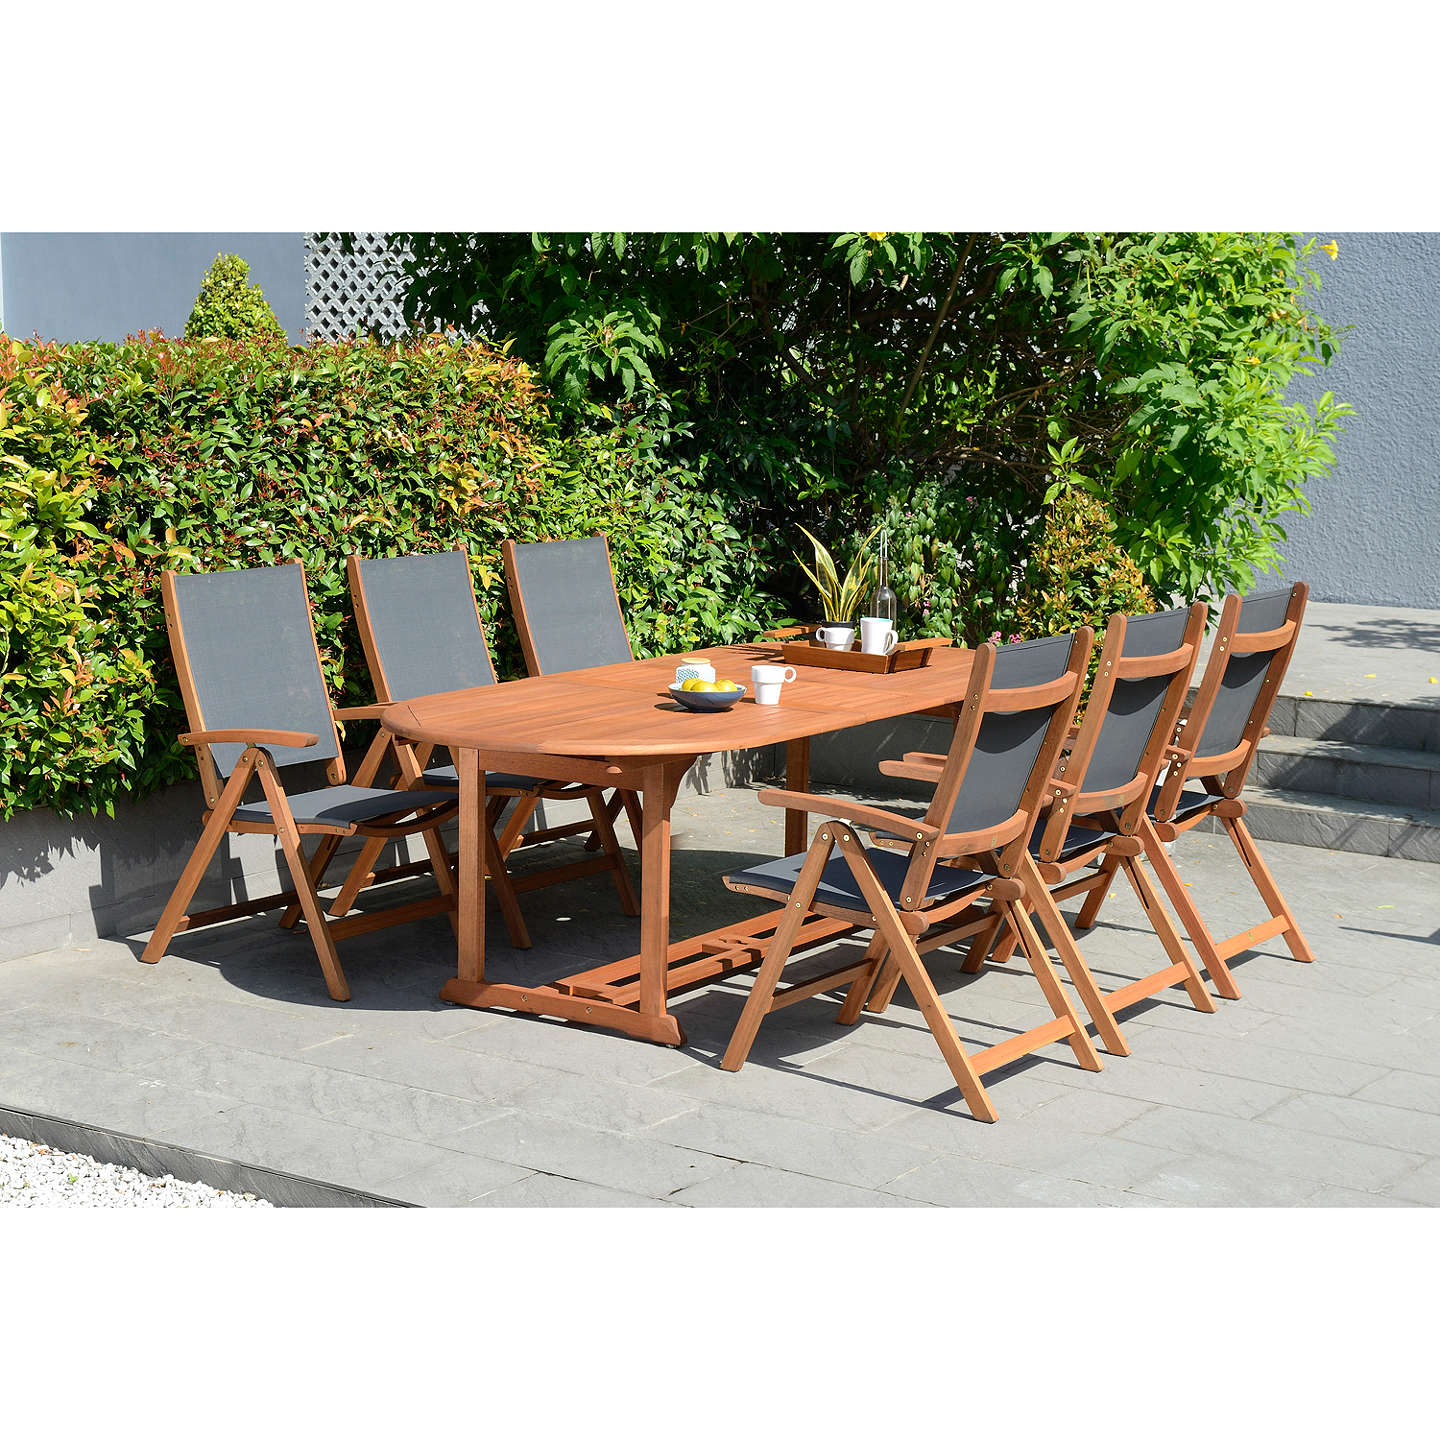 Garden Table And Chairs Set John Lewis: John Lewis Venice Extending Garden Dining Table & 6